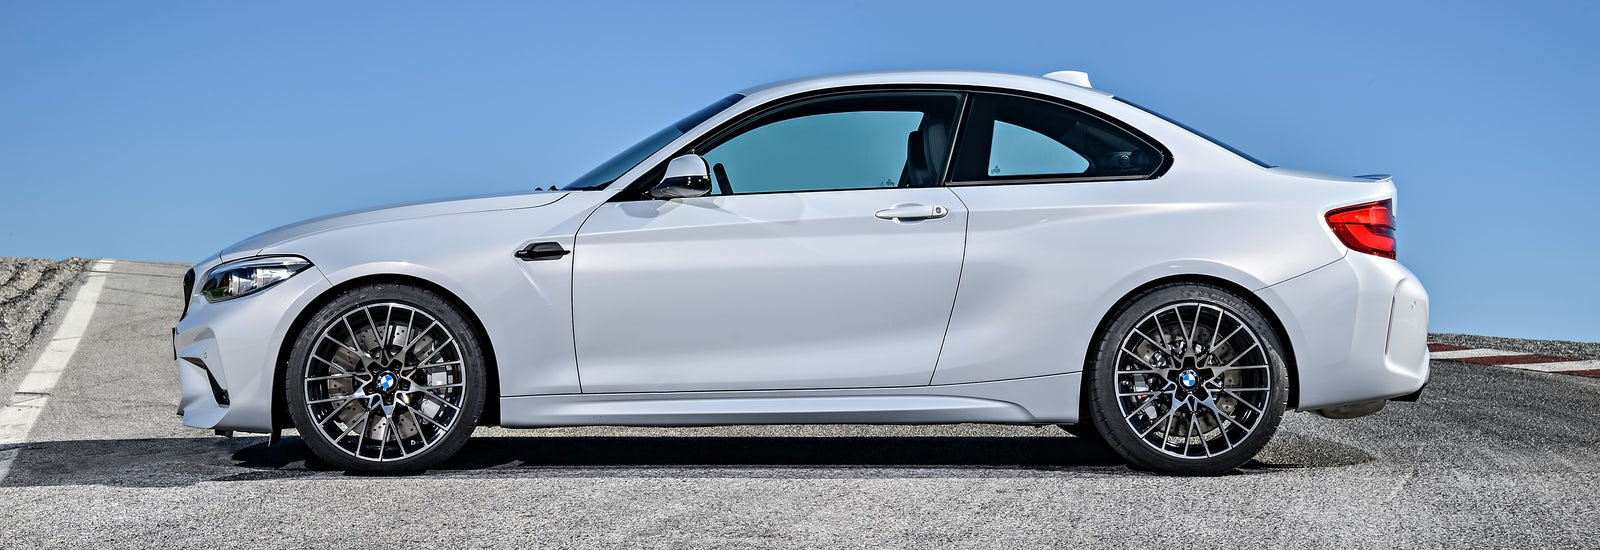 Nearly New Bmw Cars For Sale